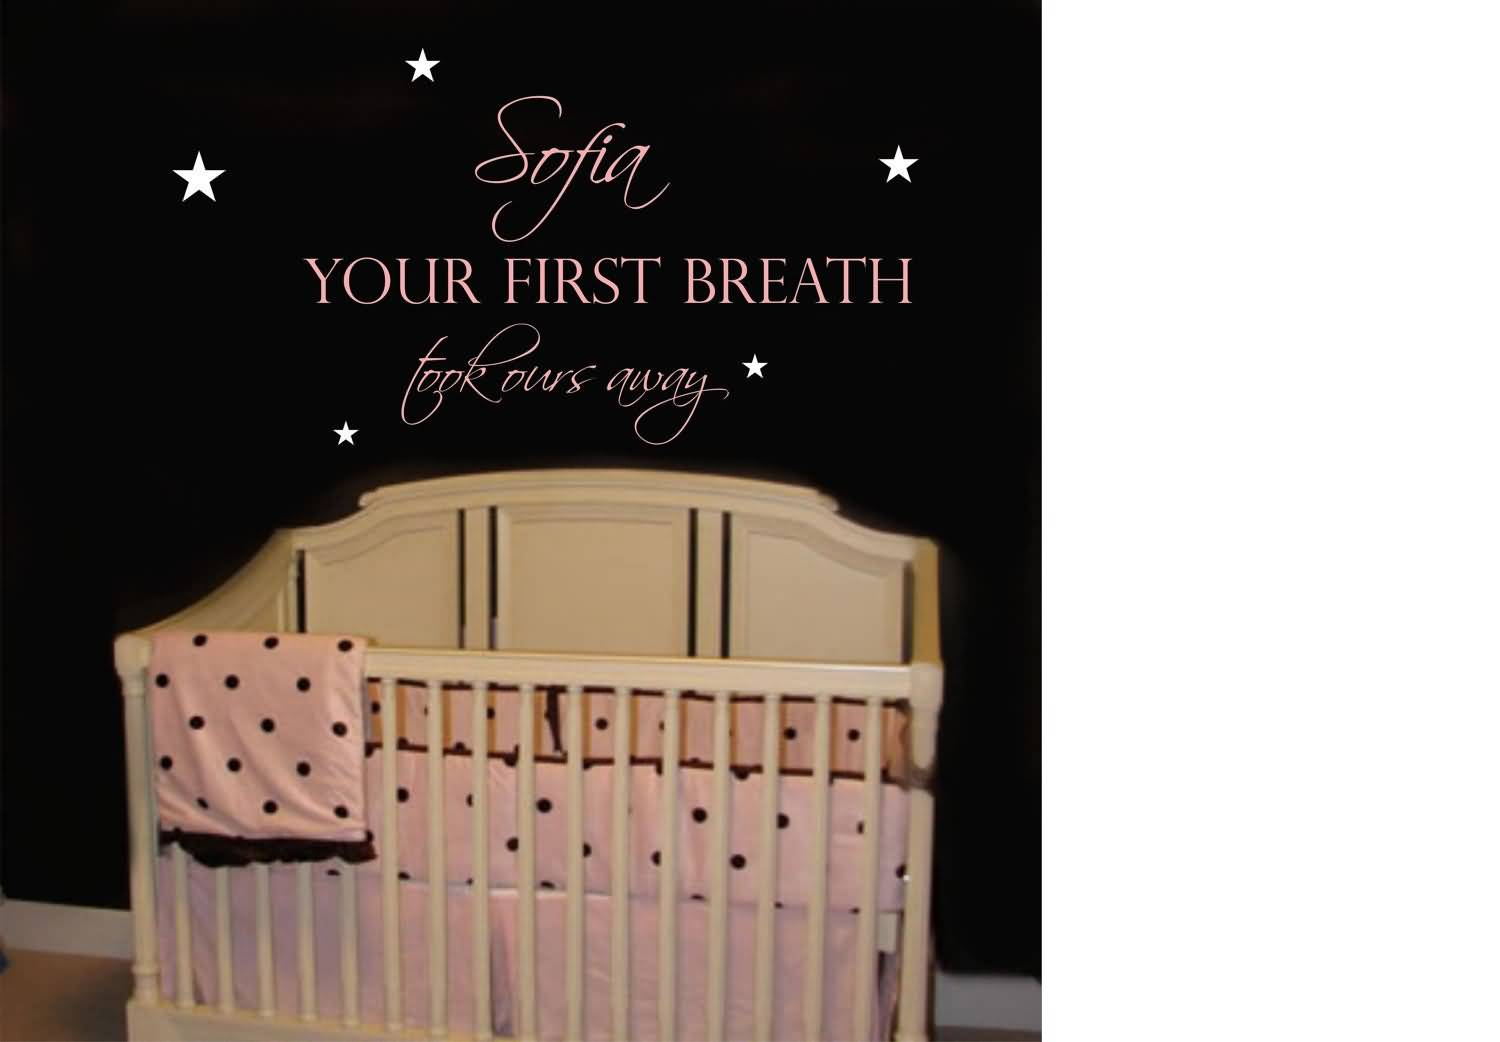 Short Baby Quotes Sofia Your First Breath Took Ours Away